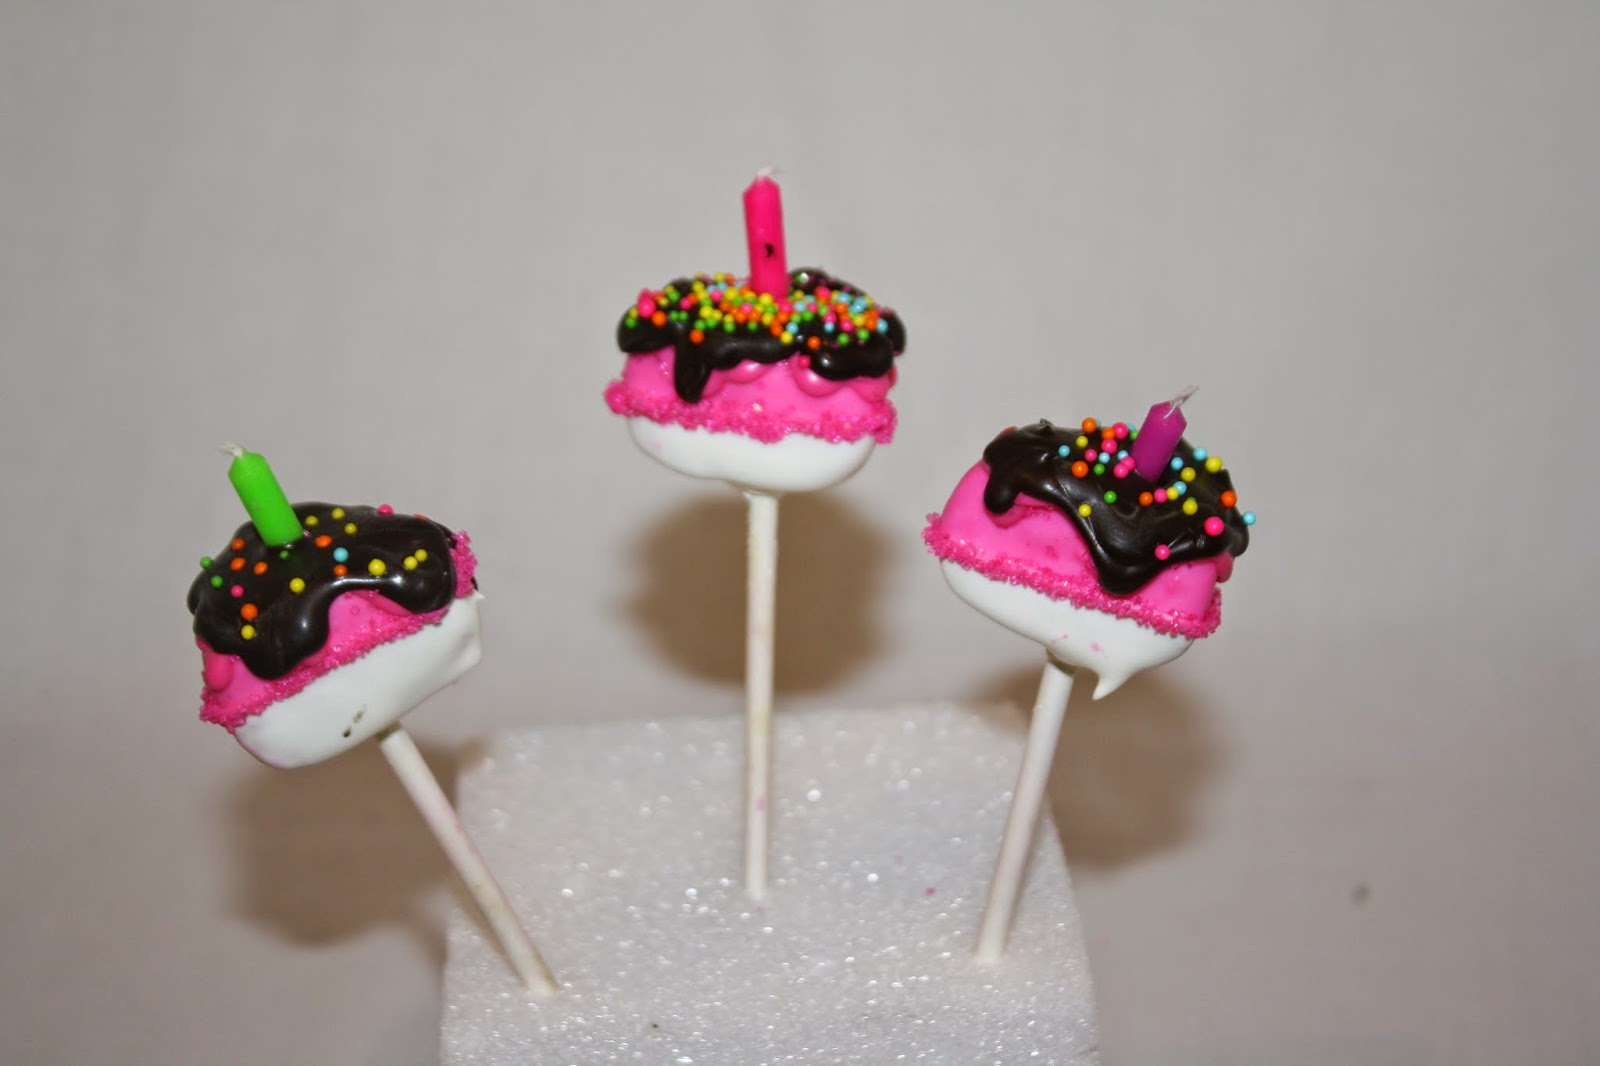 With These Cake Pops EVERYONE Gets To Blow Out The Candles Are Perfect Idea For A Group Birthday Party So Much Fun